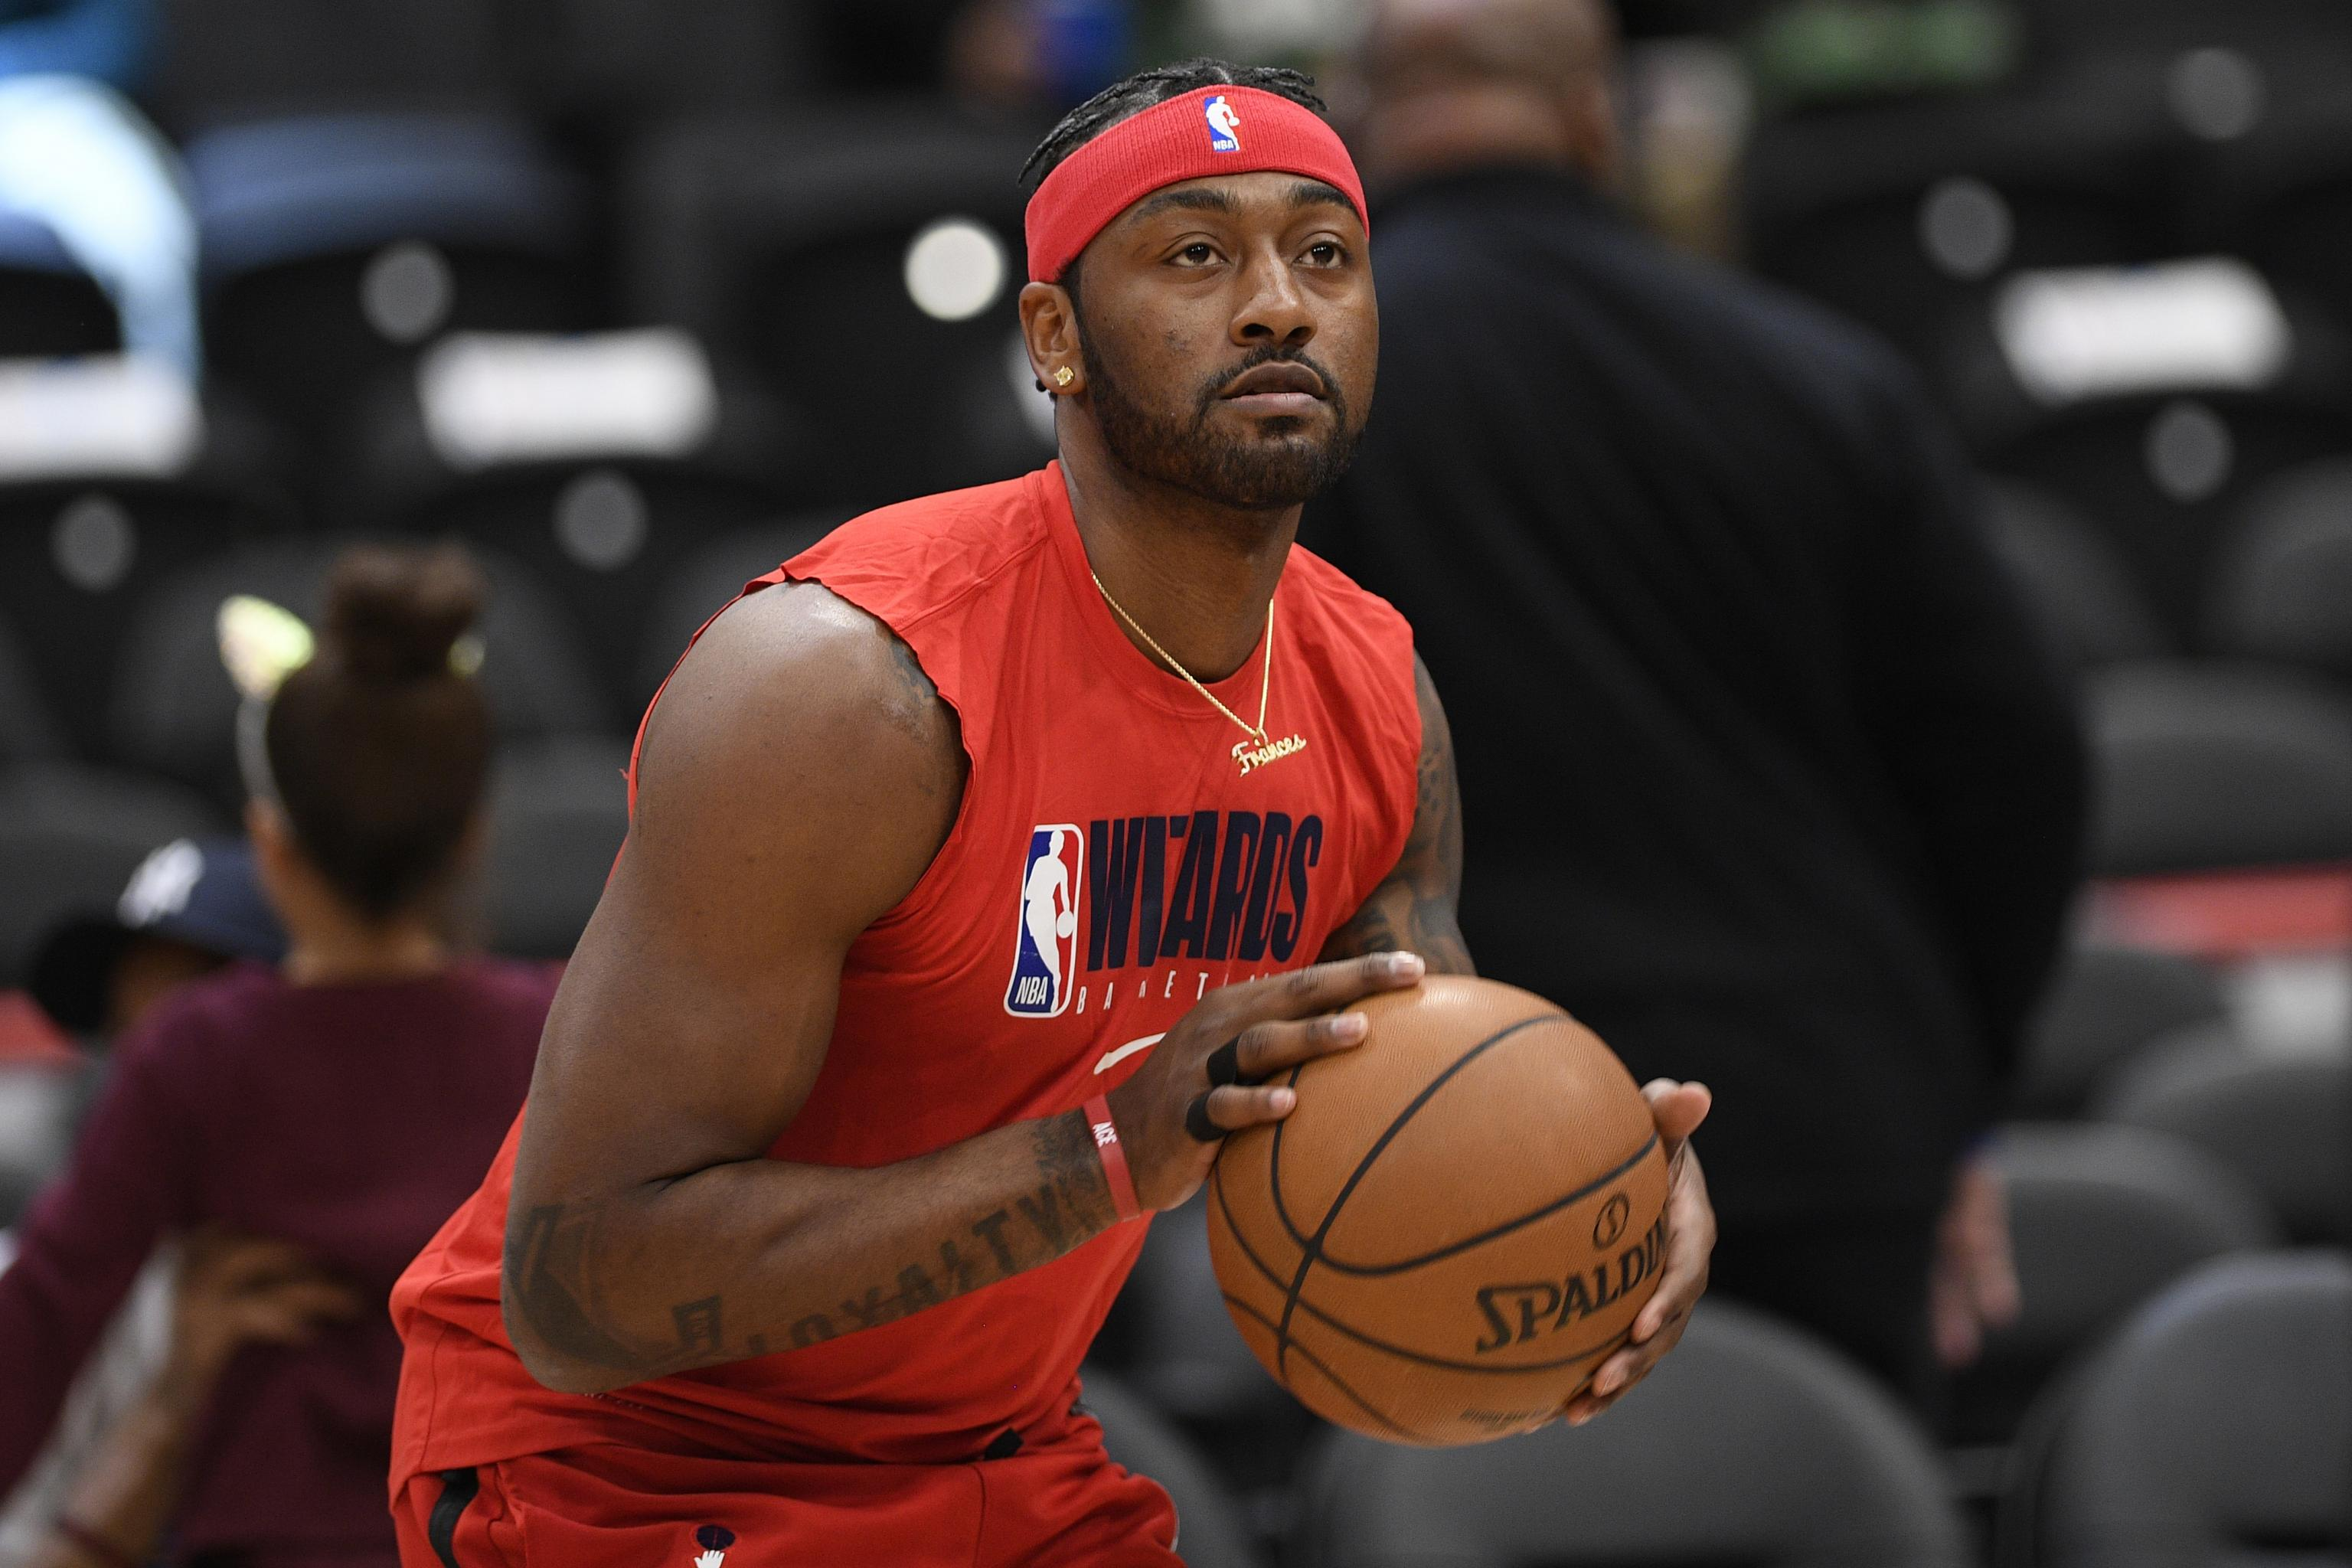 John Wall Explains Why He Wants To Play For Team Usa In 2021 Tokyo Olympics Bleacher Report Latest News Videos And Highlights